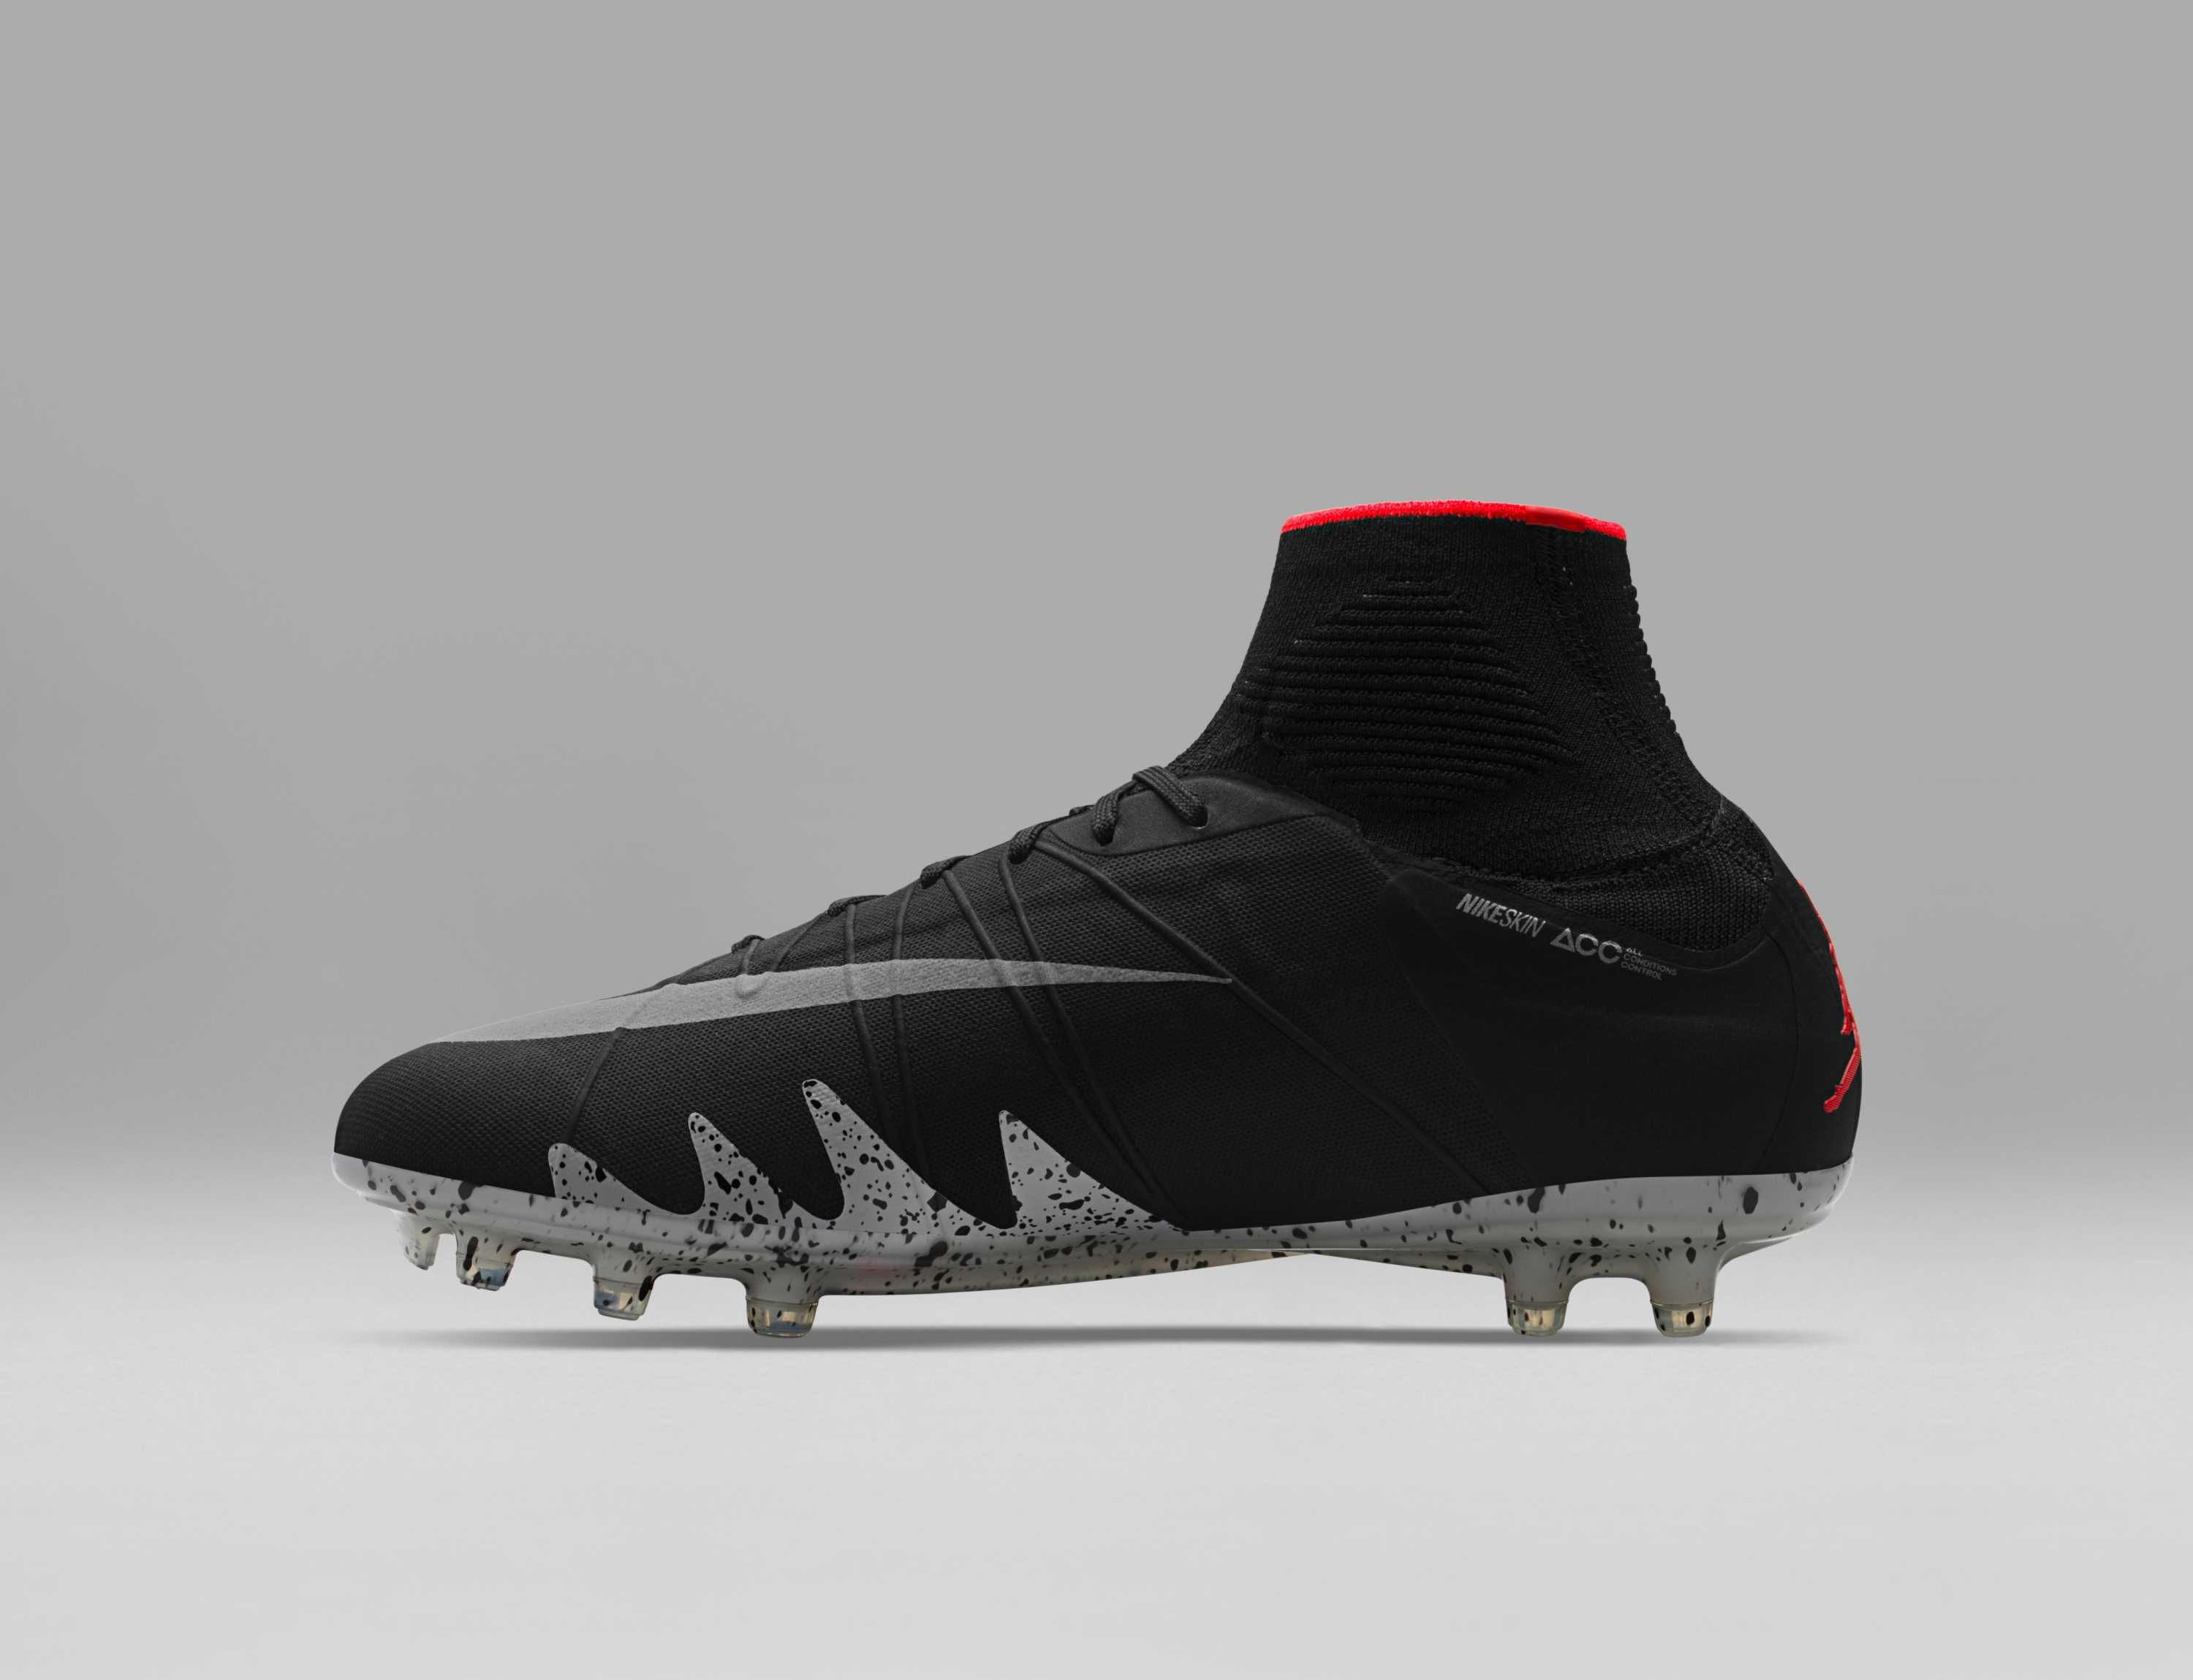 Jumpman hits the soccer field with the